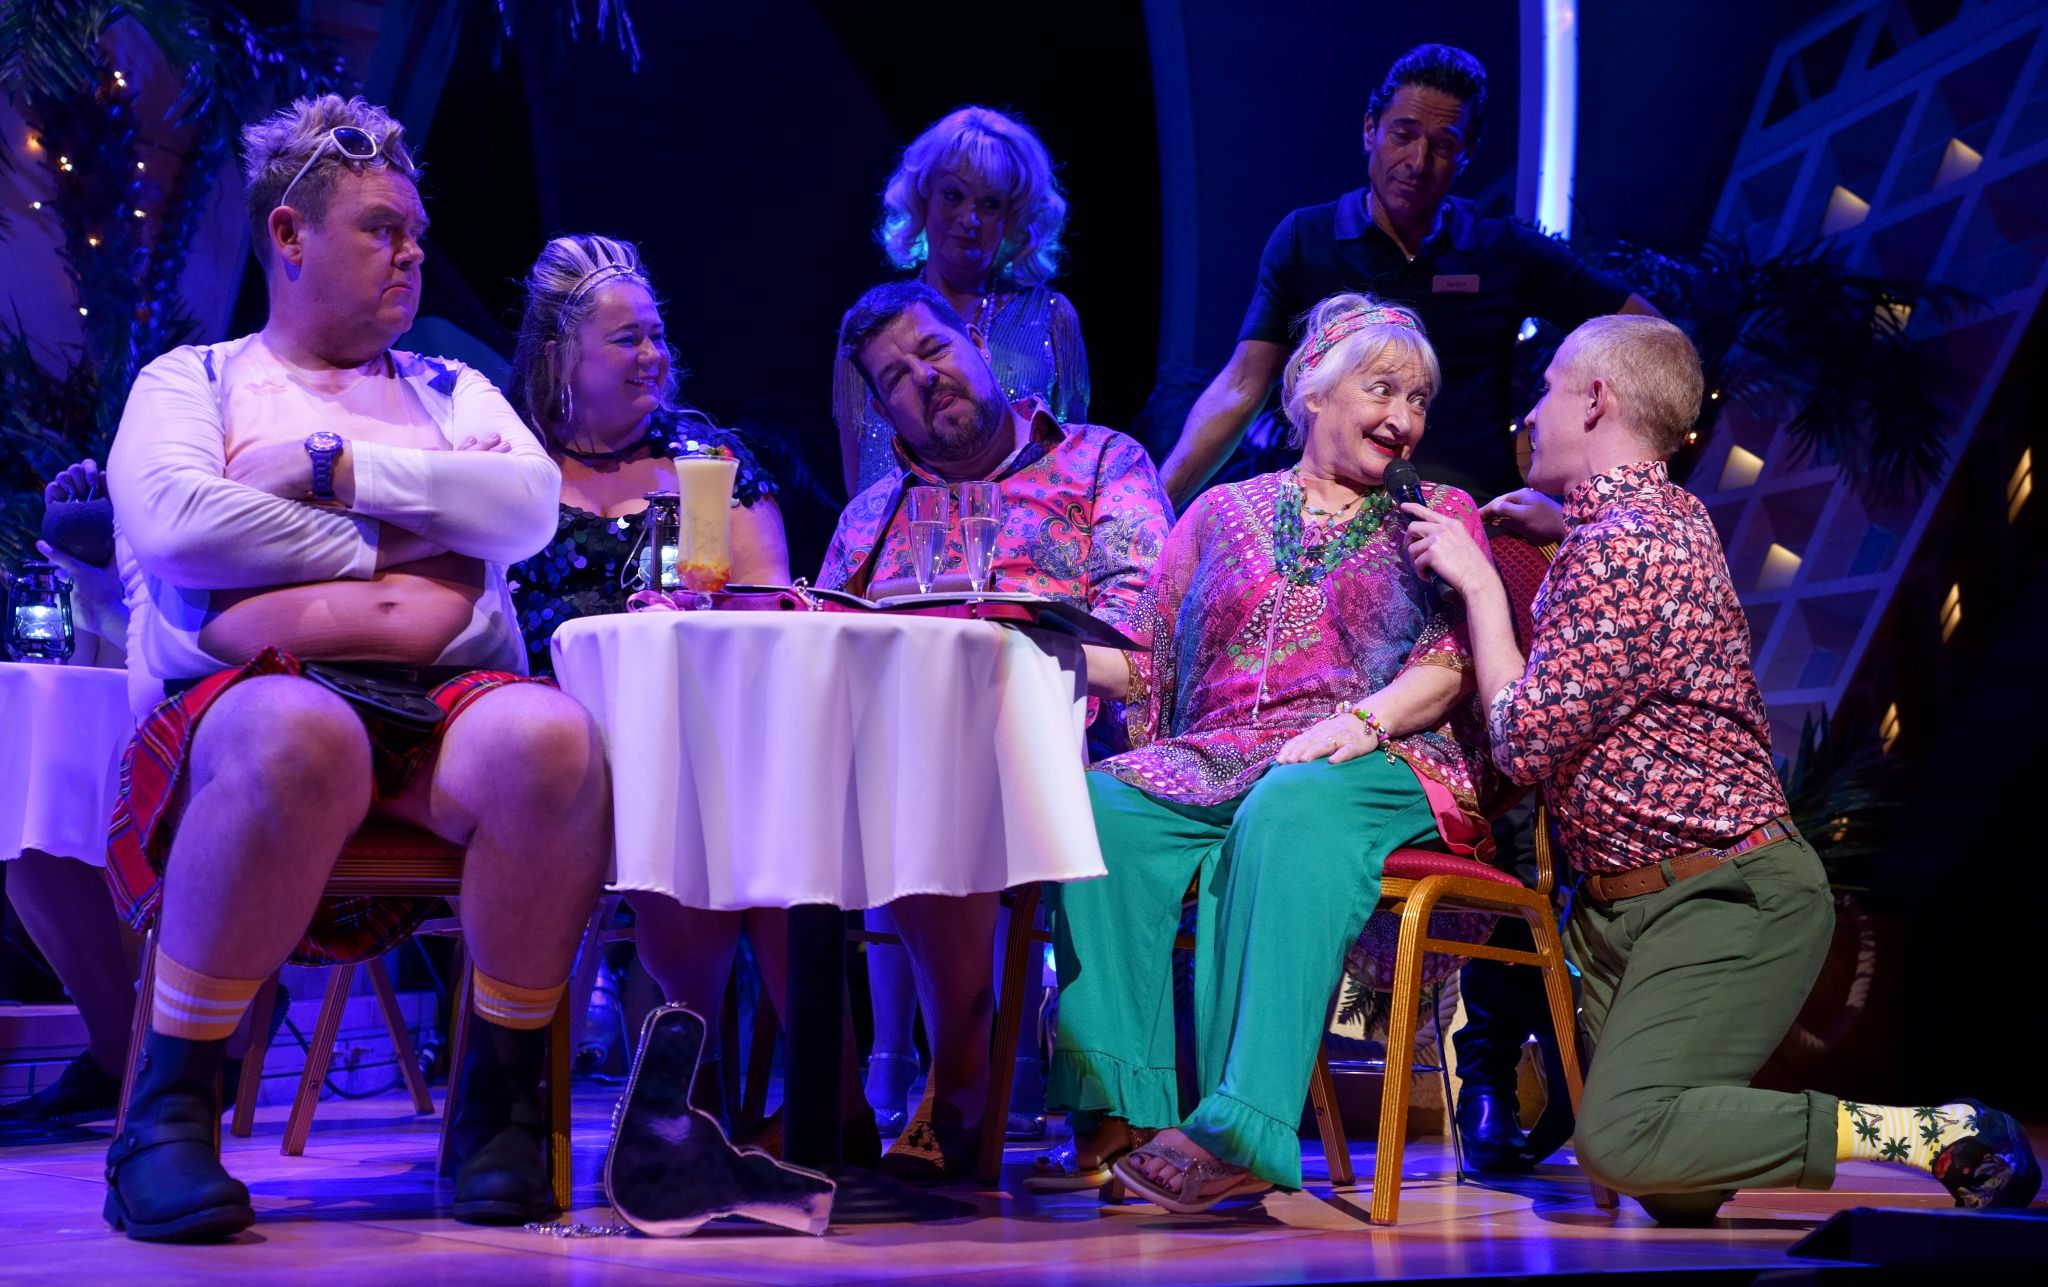 1. BENIDORM LIVE. Tony Maudsley 'Kenneth', Shelley Longworth 'Sam', Damian Williams 'Derek', Janine Duvitski 'Jacqueline', Adam Gillen 'Liam'. Photo Paul Coltas